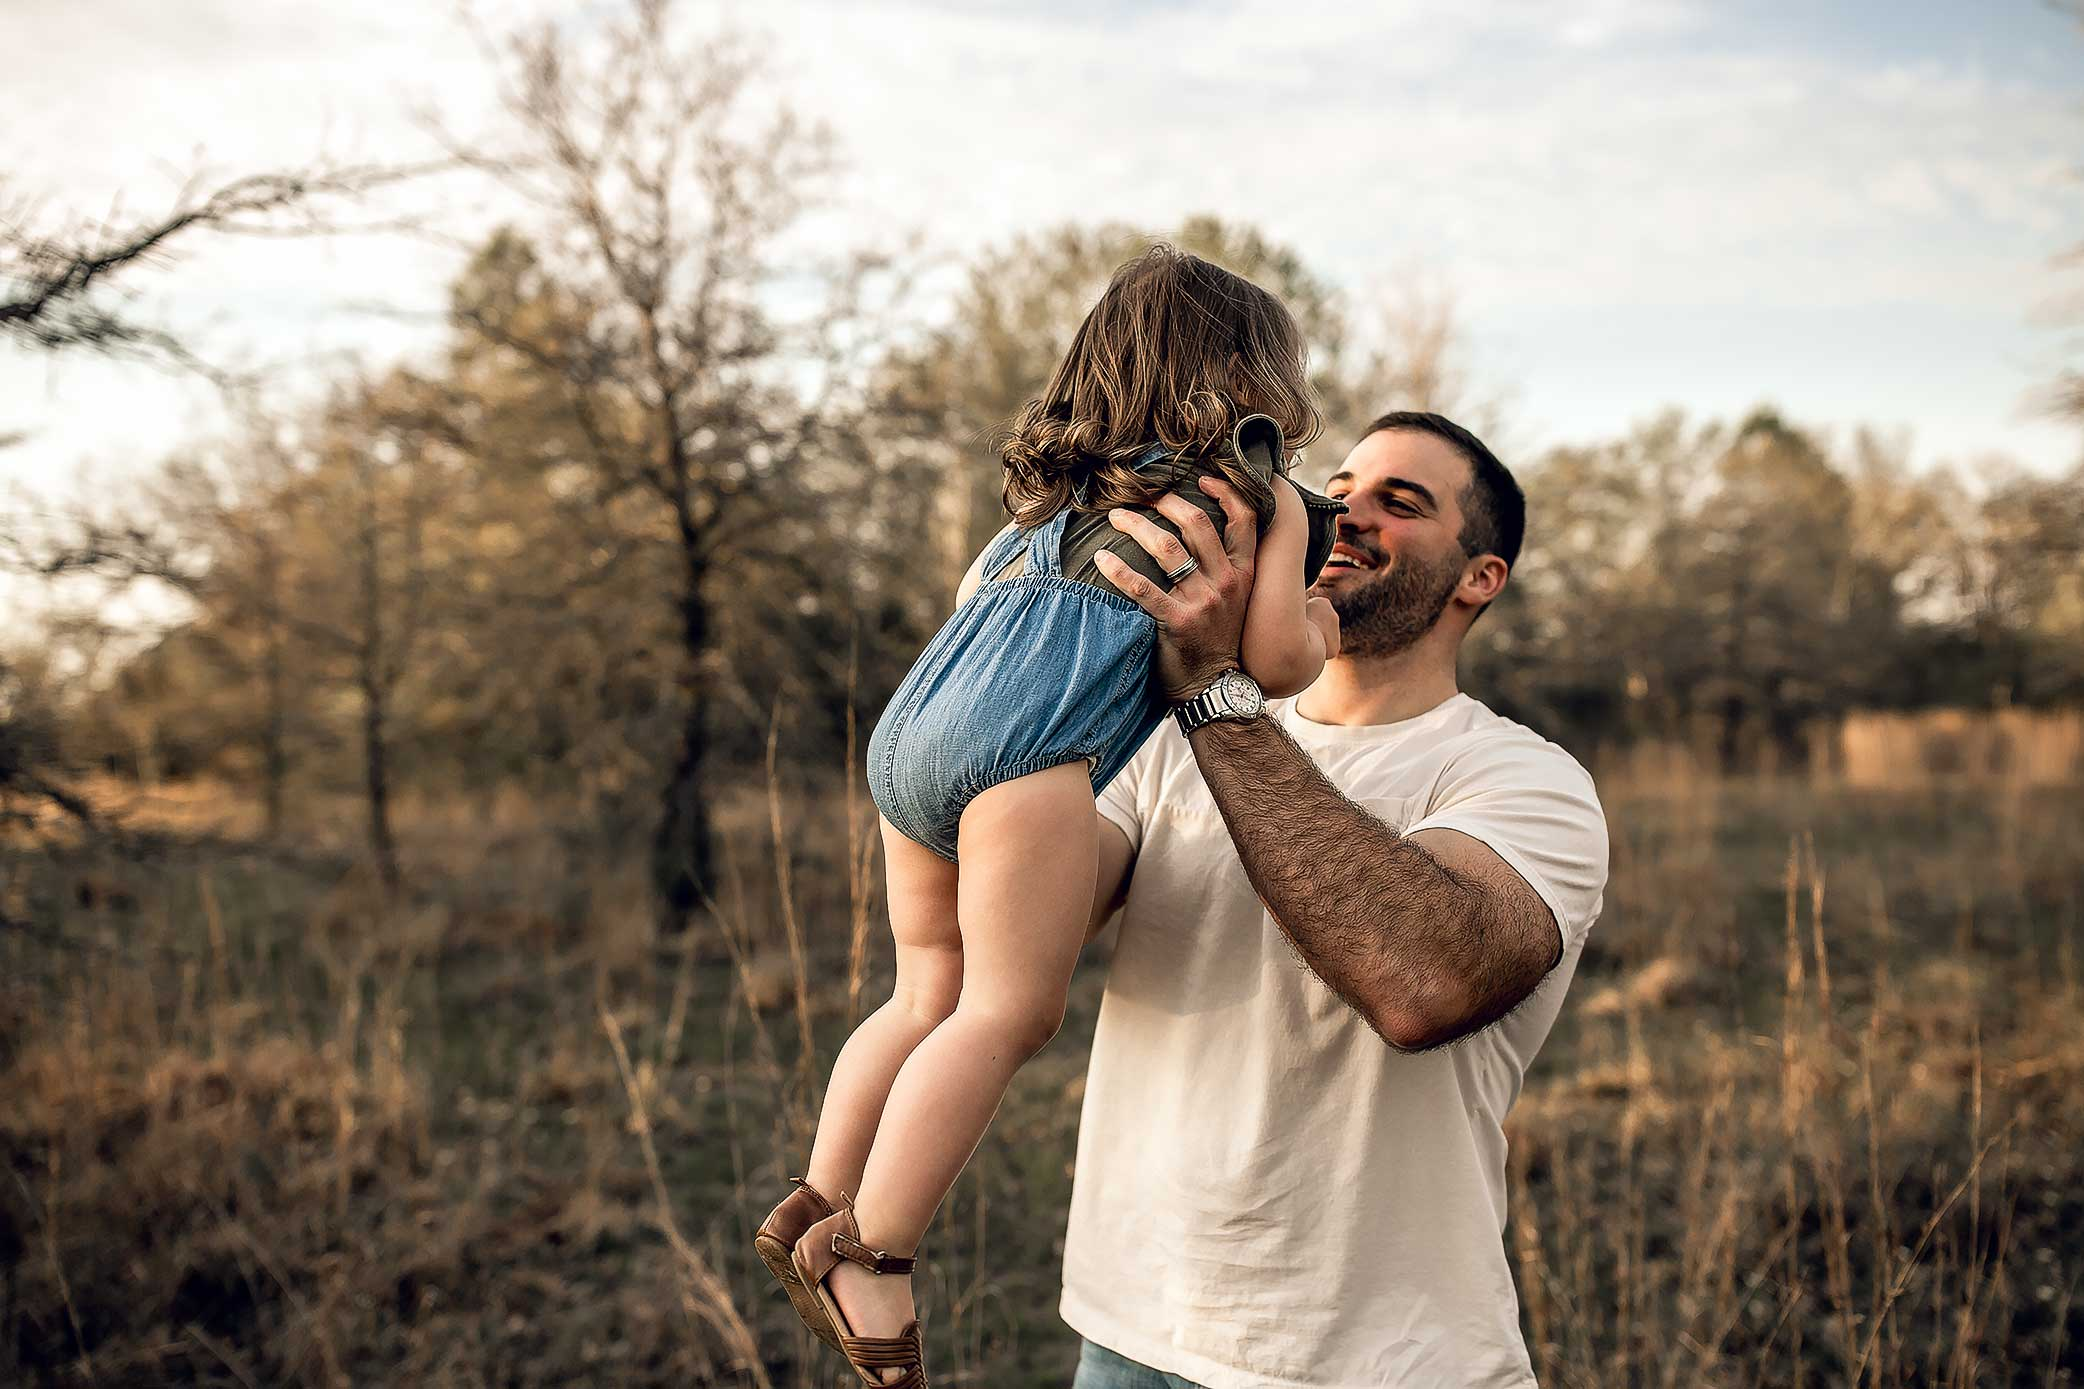 shelby-schiller-photography-sunset-family-pictures-spring-2019-31.jpg